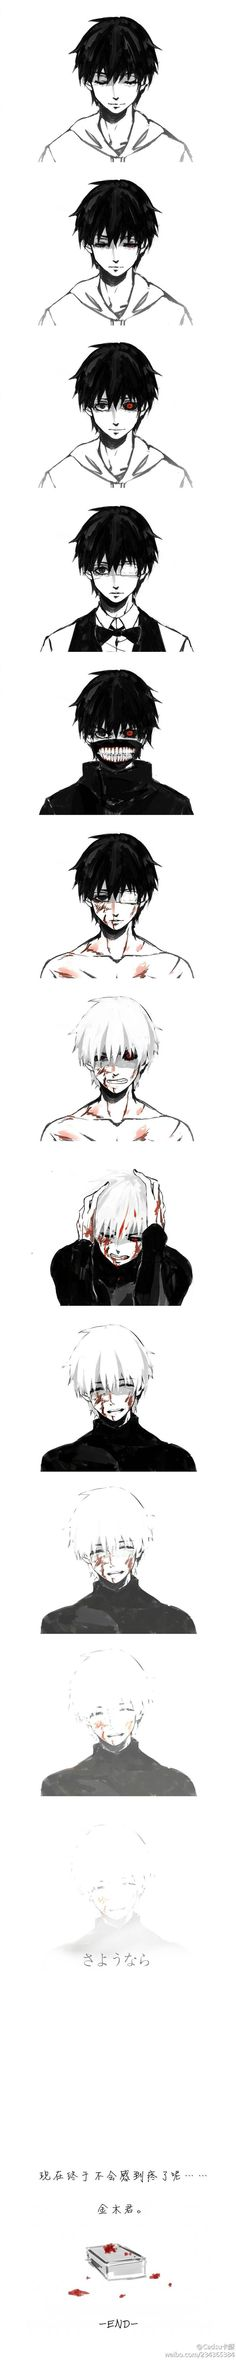 The changes Kaneki went through just because he wanted to go on a date. Did he really deserve this?